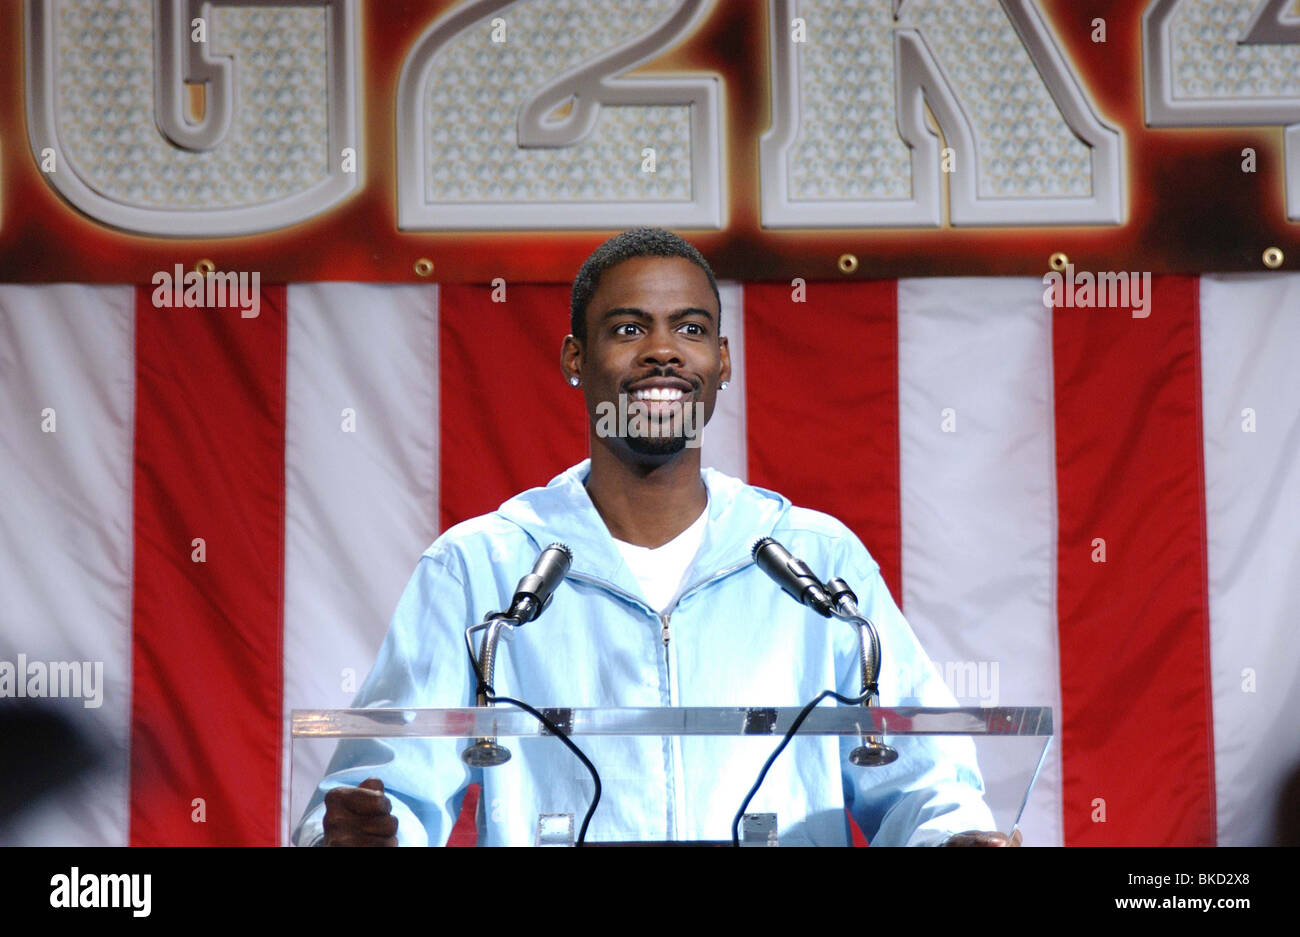 HEAD OF STATE (2003) CHRIS ROCK HOSE 001-3446 - Stock Image